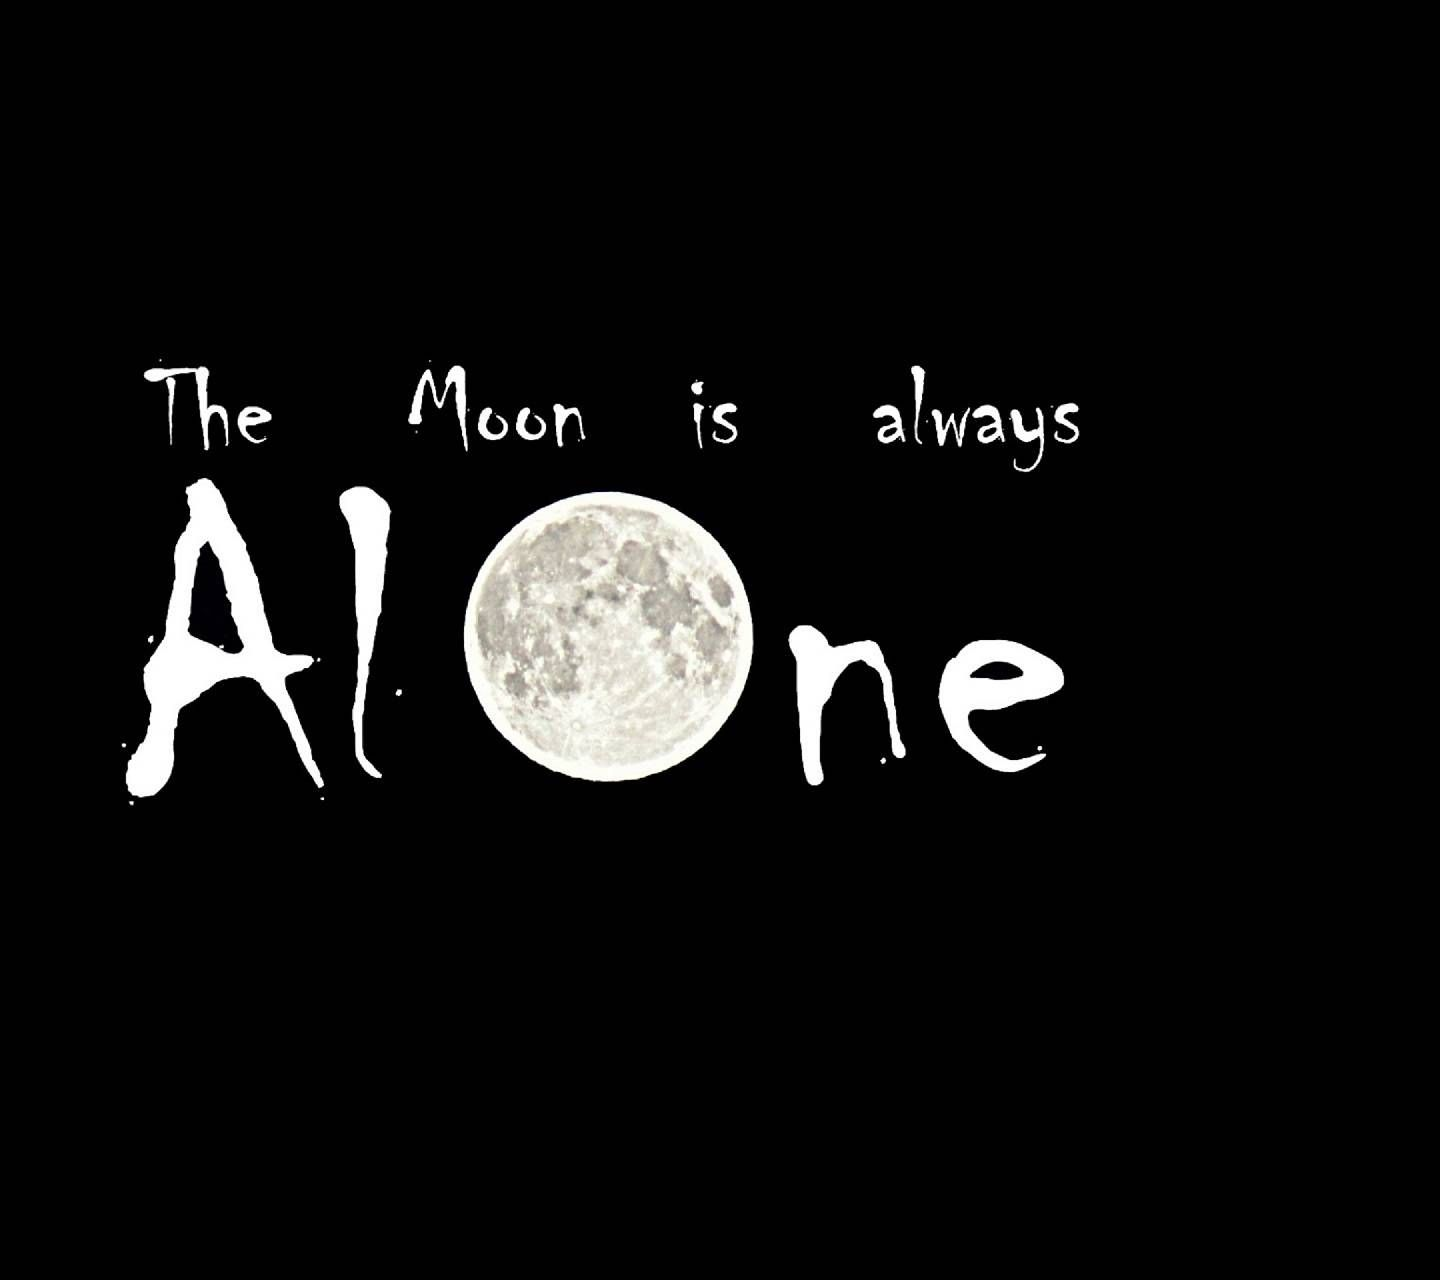 Download Alone Wallpaper By Maahi 6b Free On Zedge Now Browse Millions Of Popular Alone Wallpapers And Ring Always Alone Whatsapp Profile Picture Moon